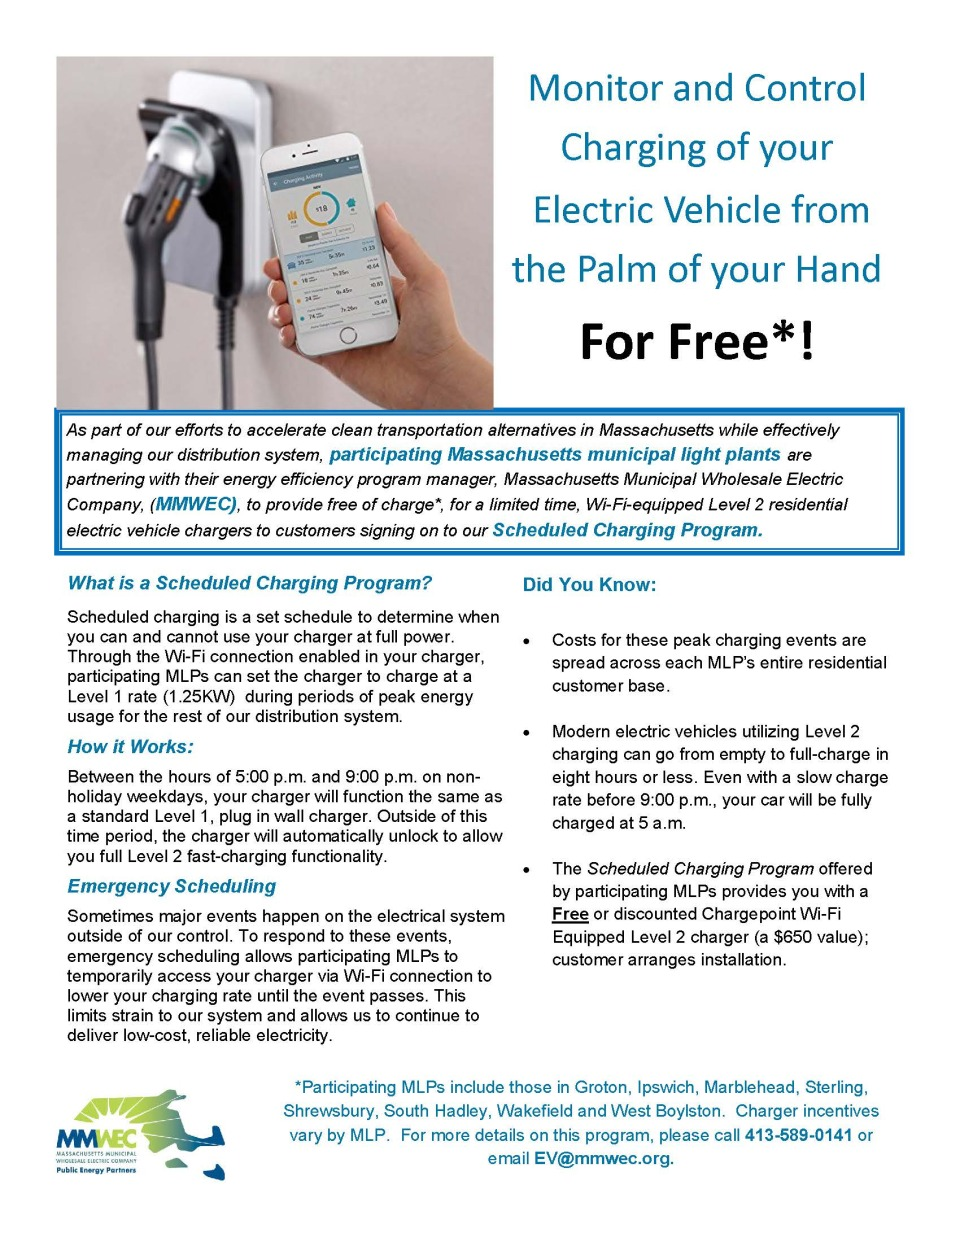 Ev Charger Incentive Munihelps